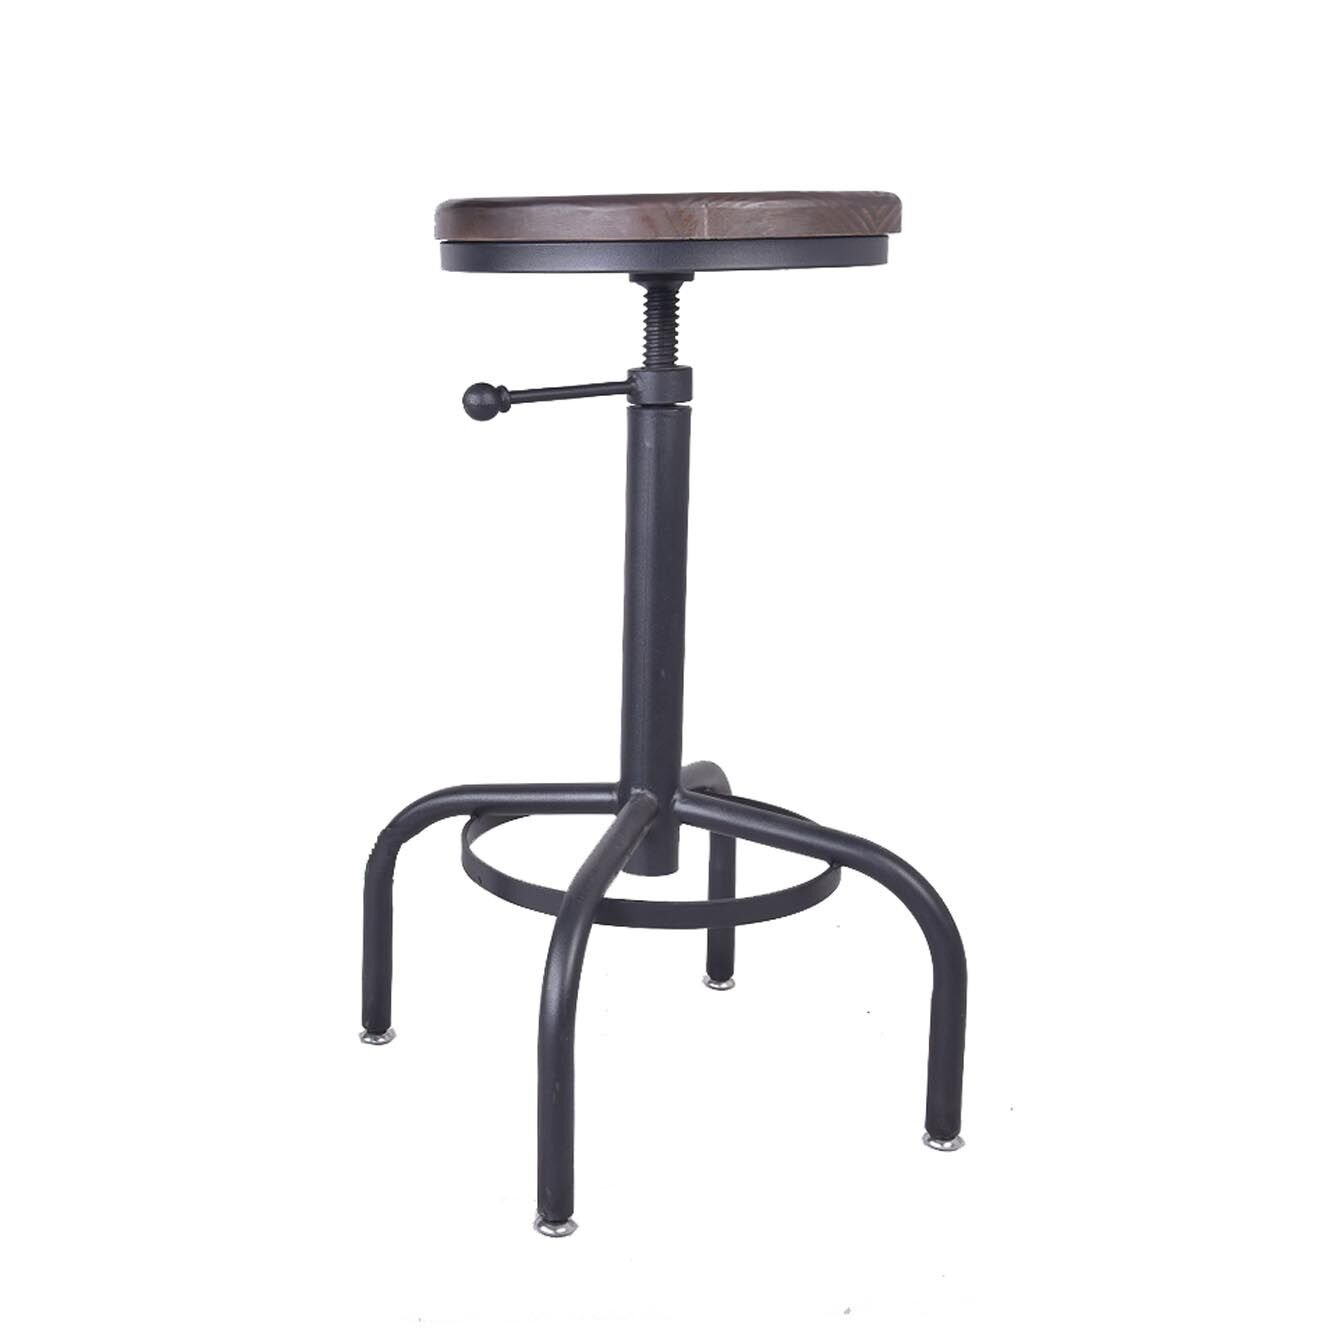 VINTAGELIVING Industrial Bar Stool Vintage Swivel Coffee Counter Chair Kitchen Dining Wood Seat Iron Frame Height Adjustable